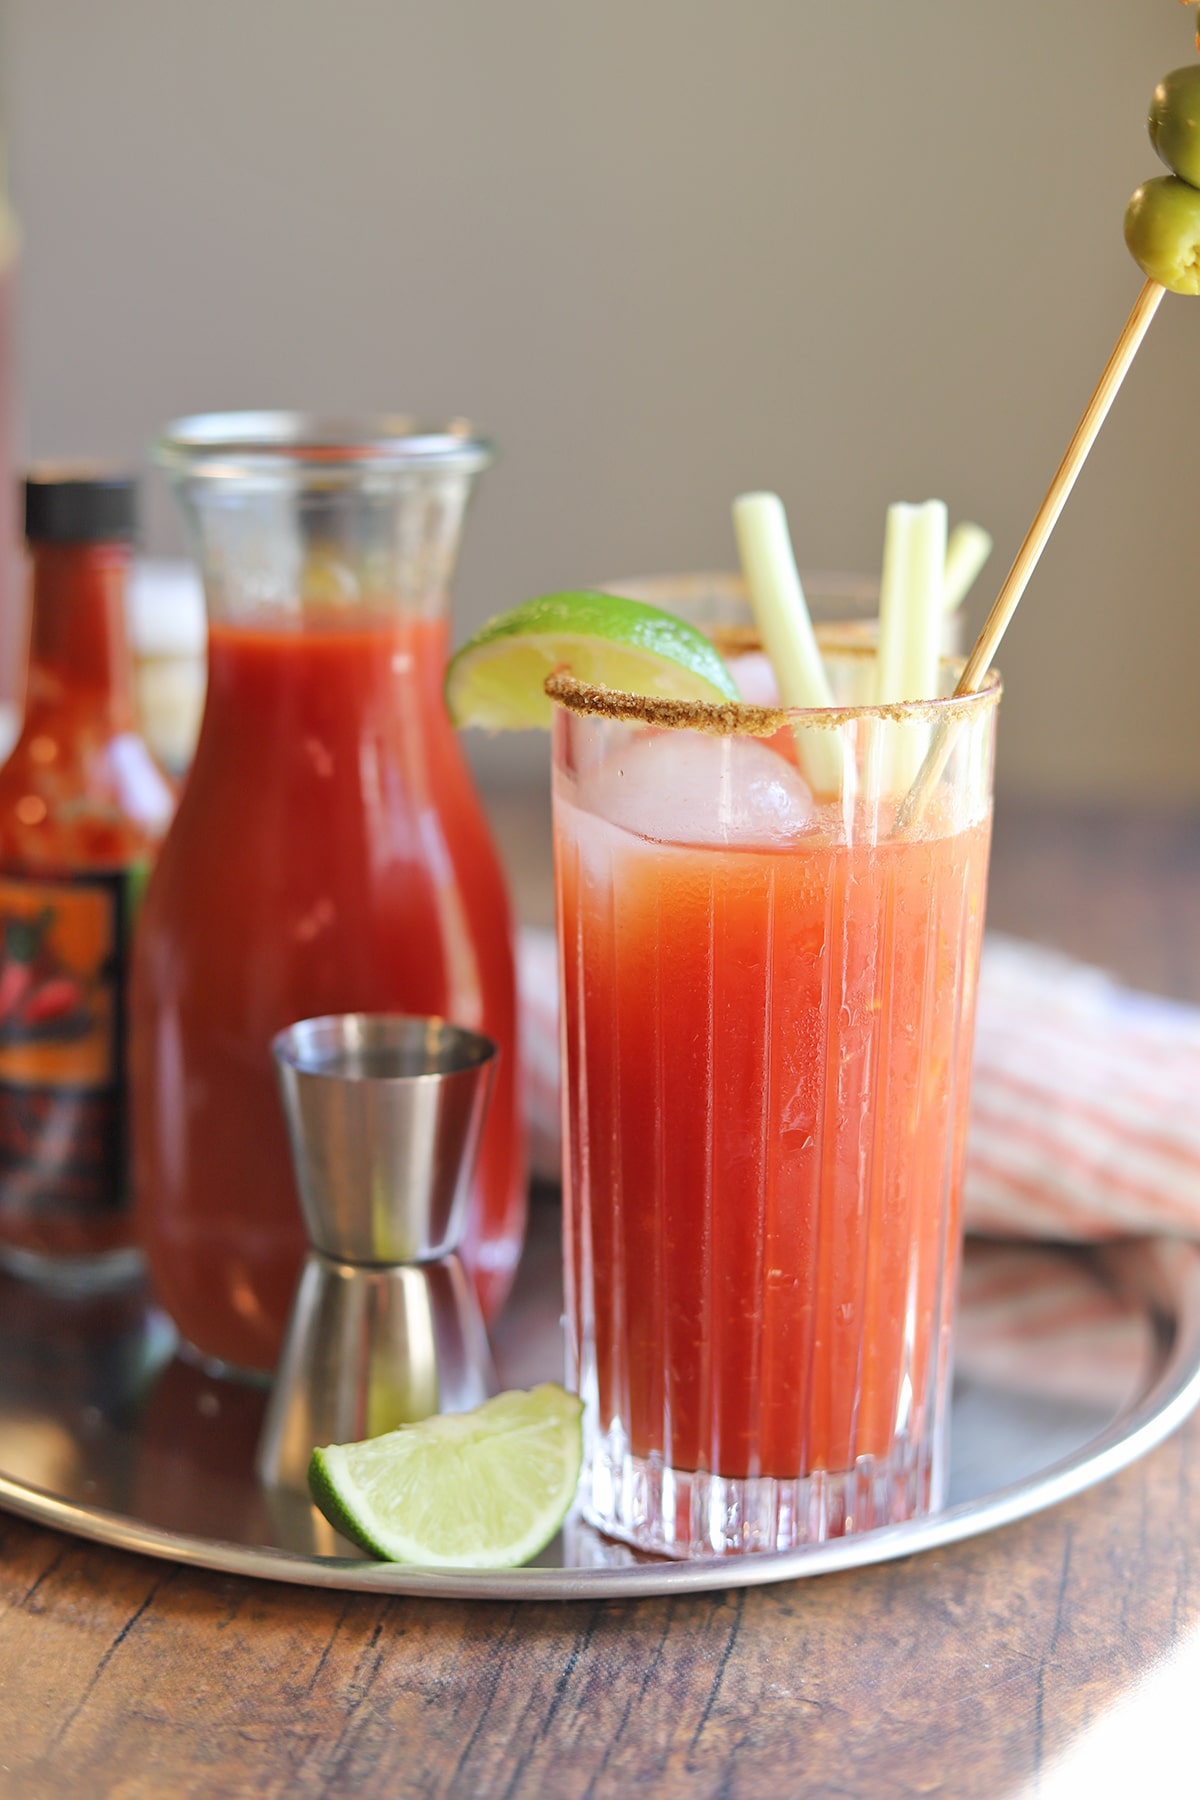 Bloody Mary drink on tray with tomato juice, jigger, lime, and hot sauce.